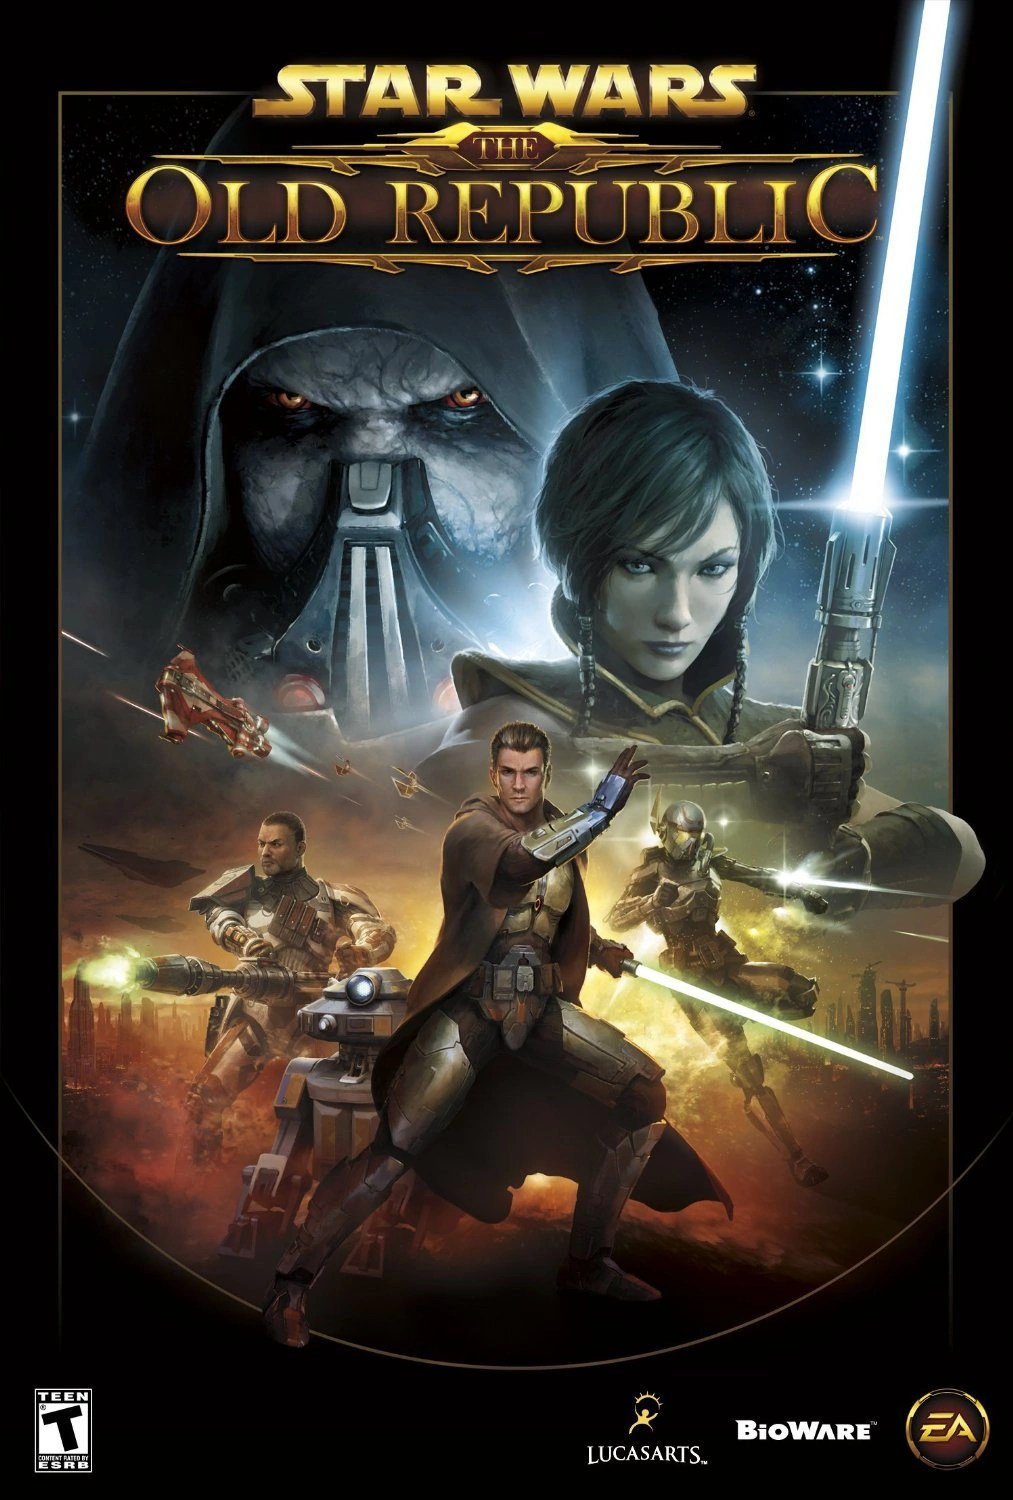 Star Wars House Items Star Wars The Old Republic Wookieepedia Fandom Powered By Wikia